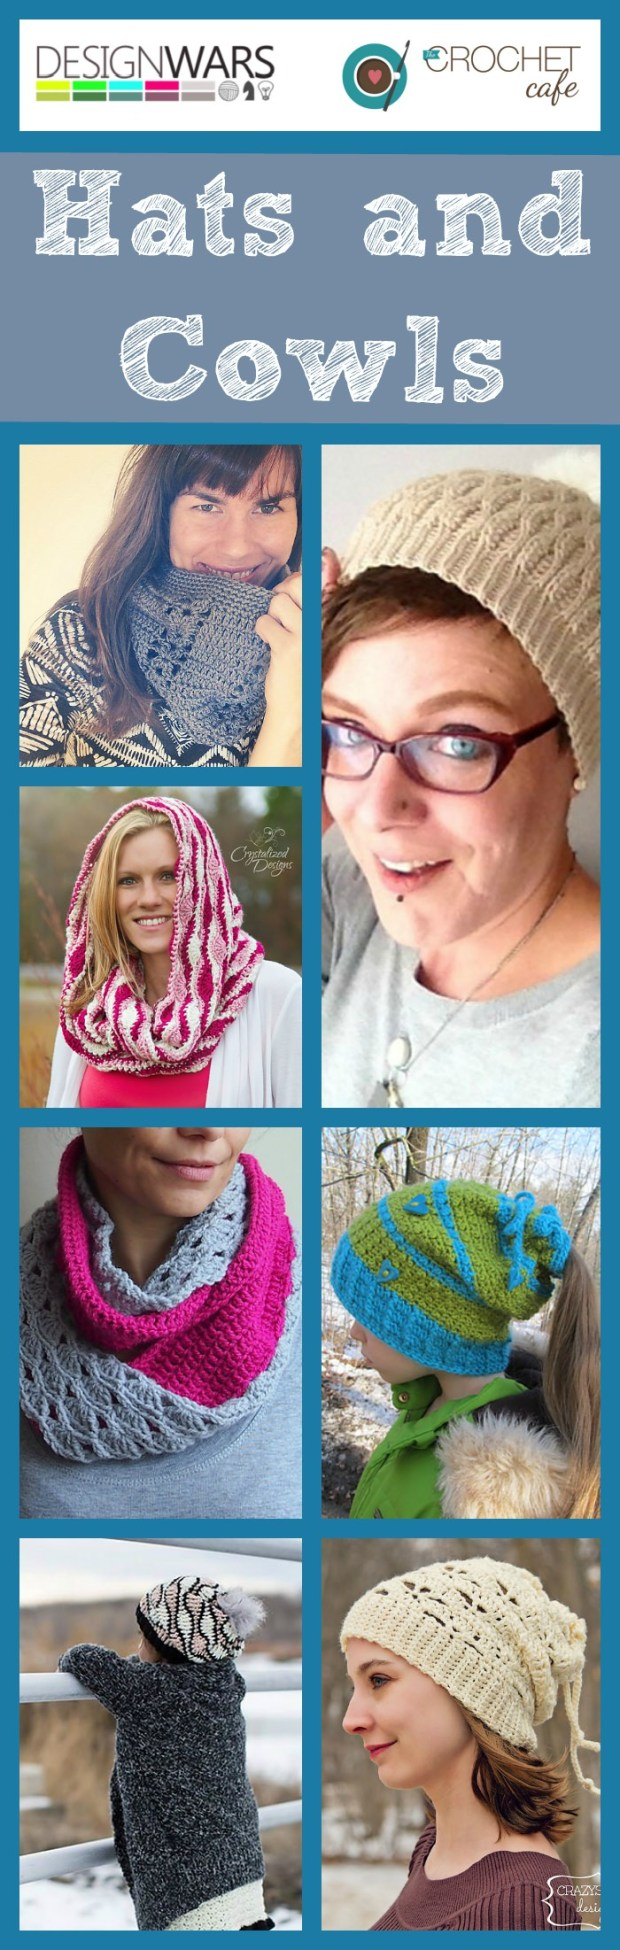 Hats and Cowls by Design Wars and The Crochet Cafe